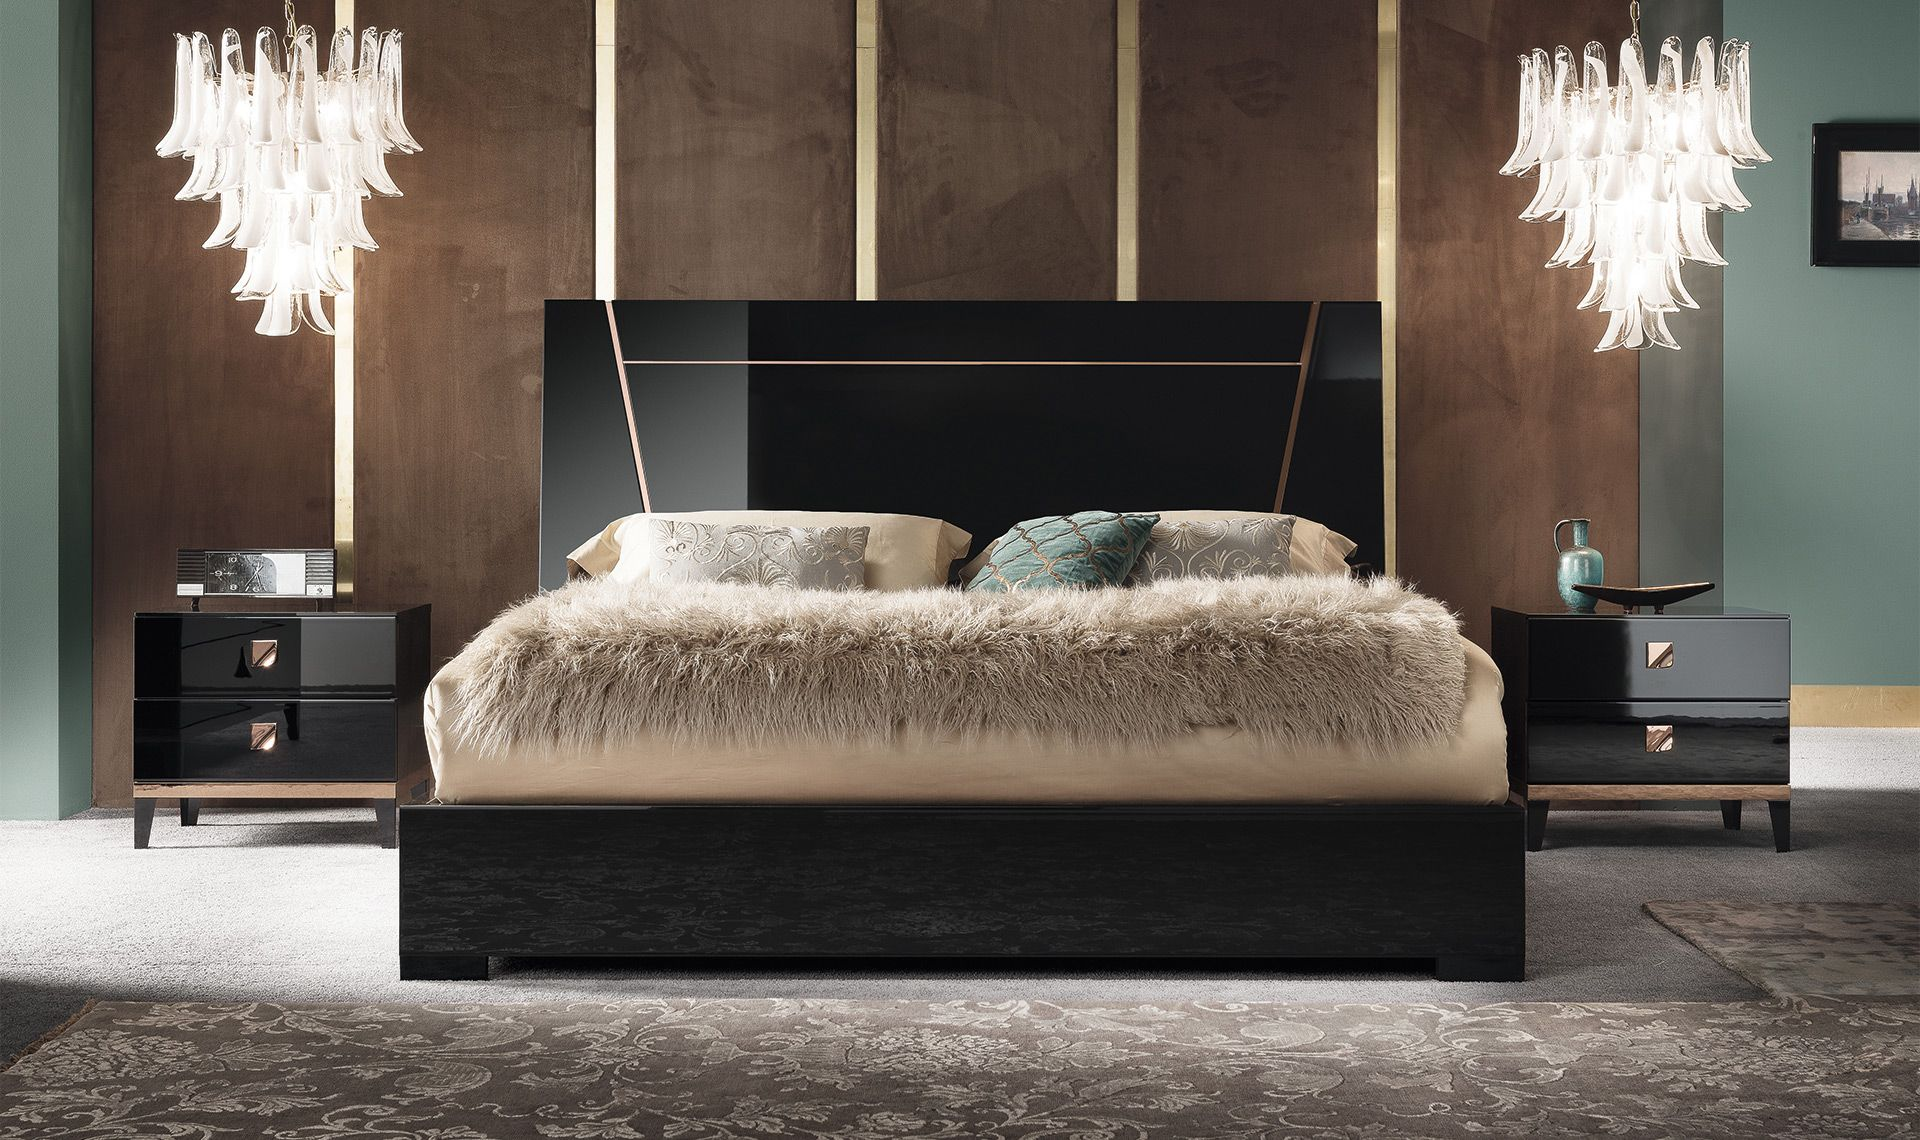 The Mont Noir Bedroom Collection is stylish and fashion-forward